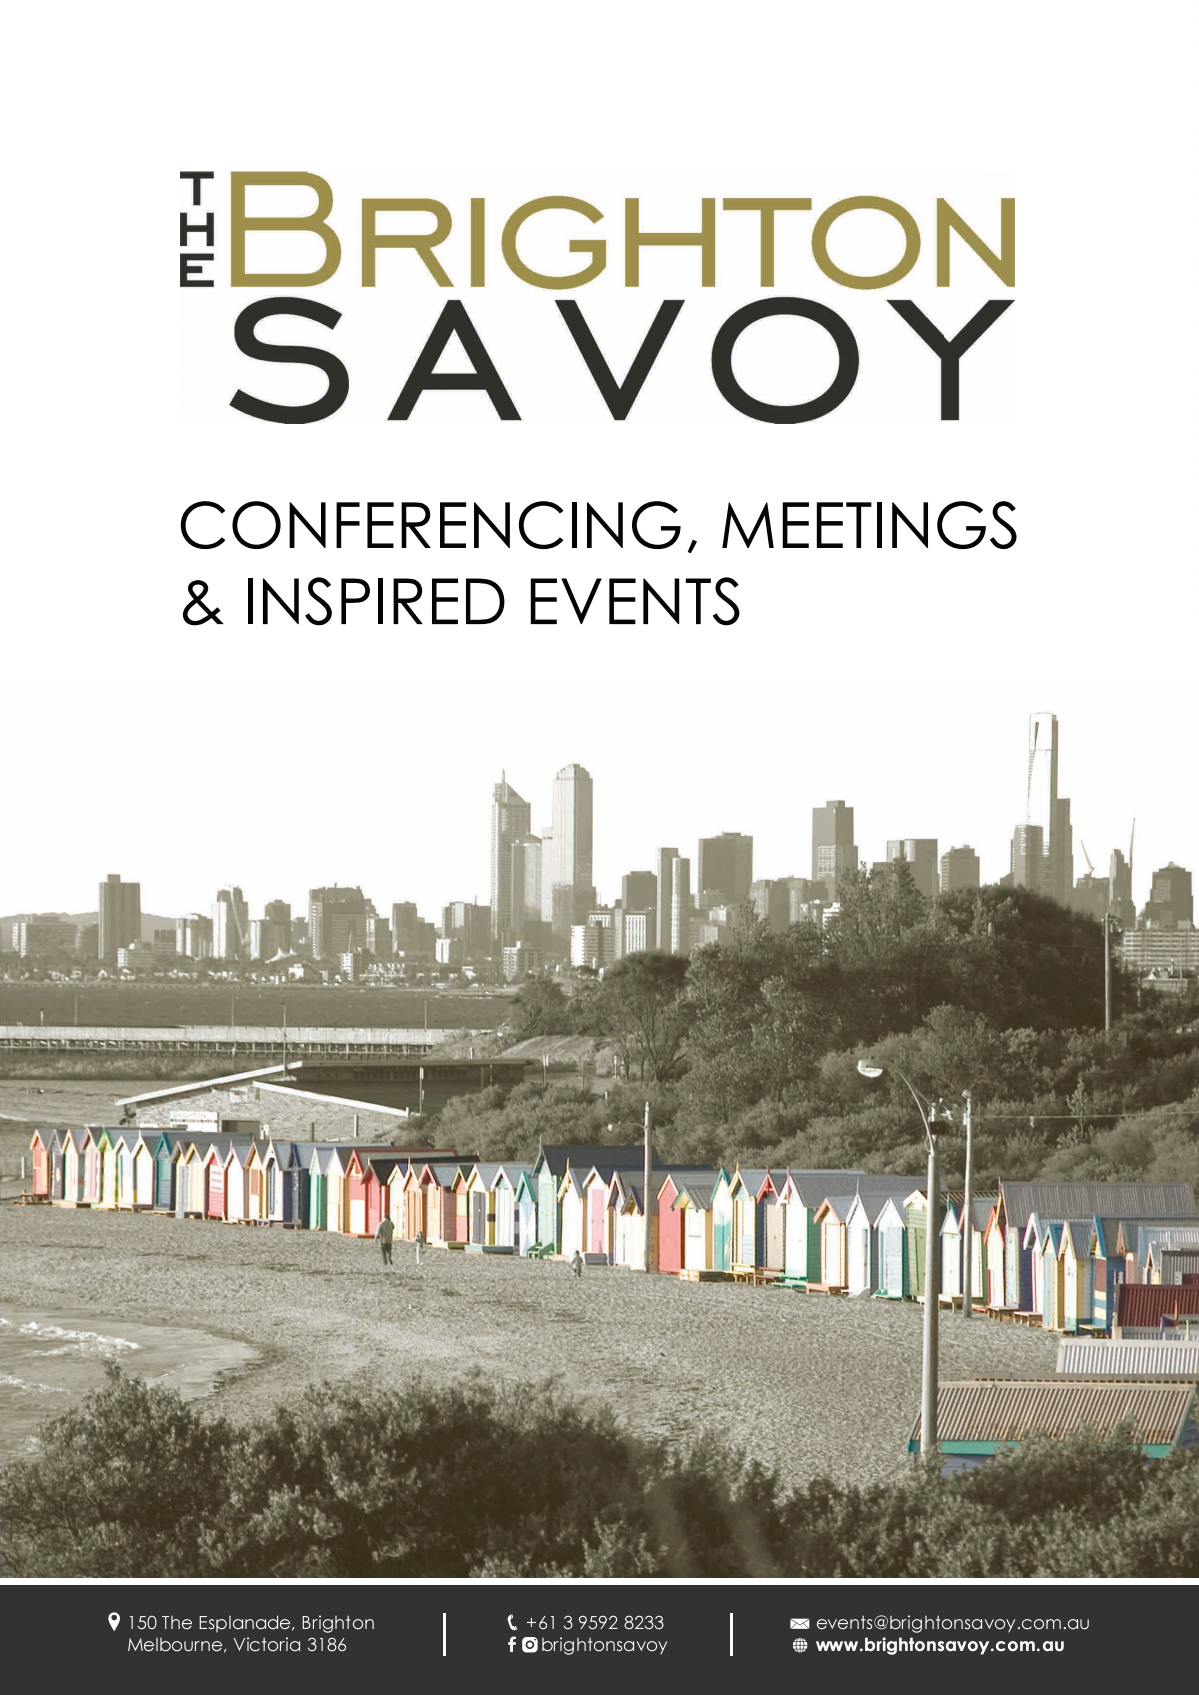 Update of conference brochure